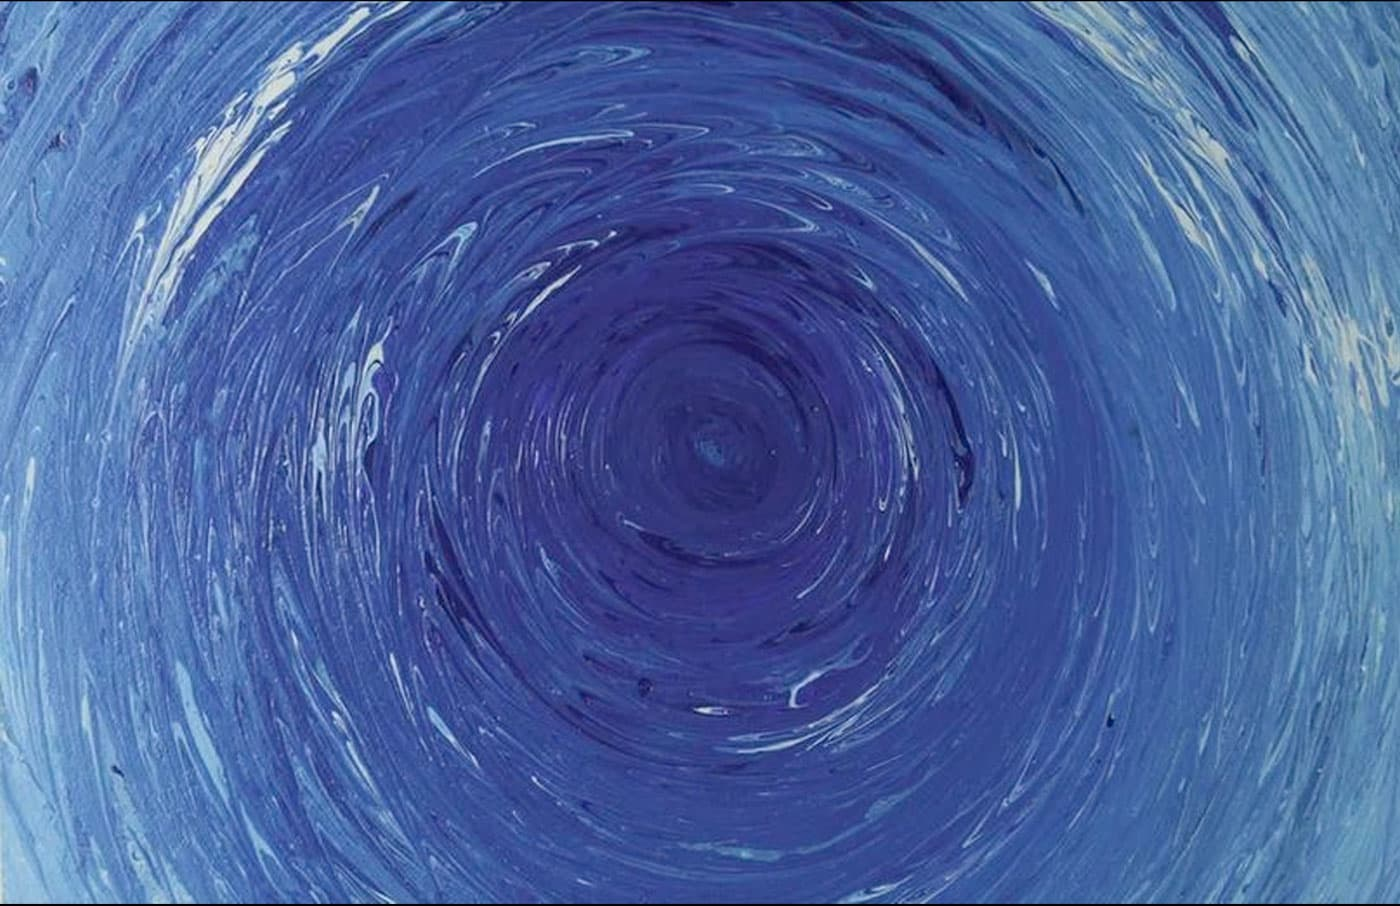 jonas-goldmann-dynamic-spiral, paint pouring technique